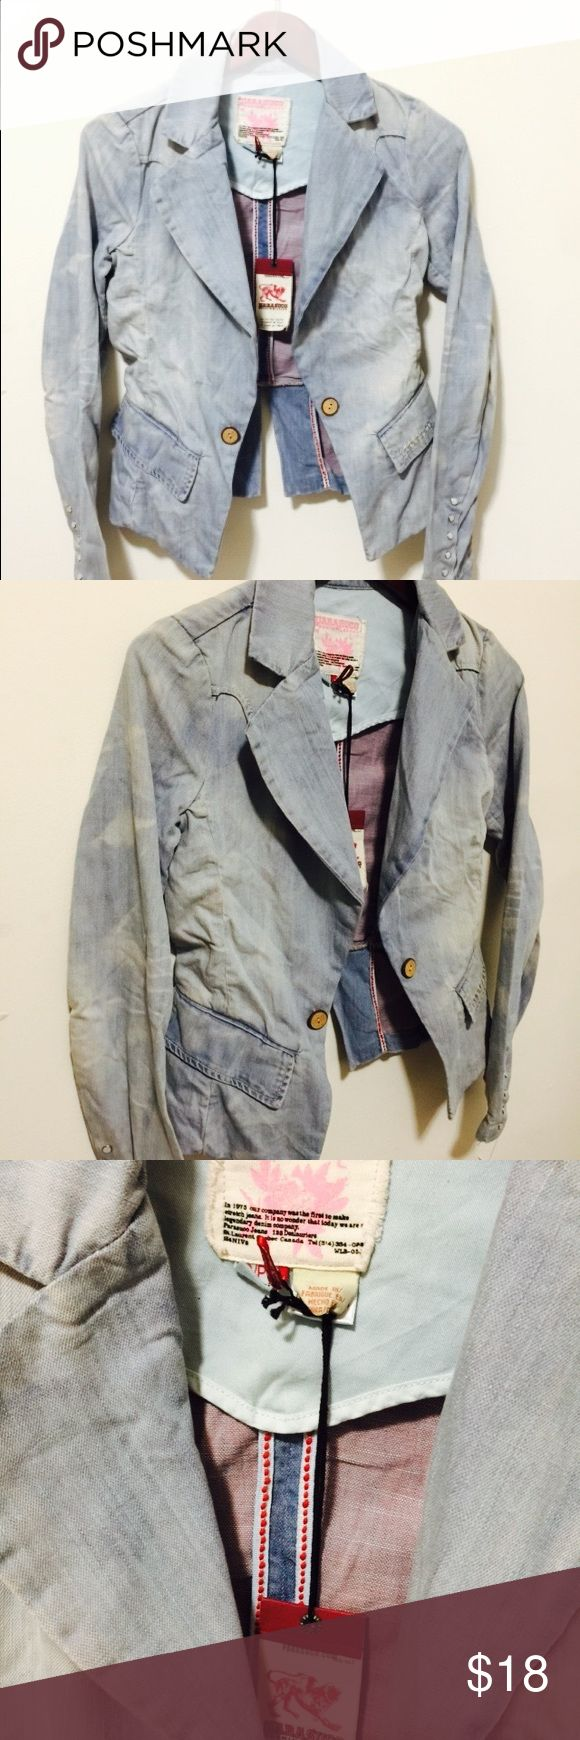 NWT DYE OPEN JEAN BLAZER OPEN SPLIT ON BACK SMALL NWT LIGHT BLUE DYE OPEN JEAN BLAZER HAS A BACK SPLIT  SIZE SMALL LEN 21 ARMPIT 16 GREAT WITH JEANS  MANNEQUIN IS SIZE MED. PLEASE ASK ANY QUESTIONS ❤️❤️NEW INVENTORY❤️❤️  ✅BUNDLE AND SAVE ON SHIPPING 20% OFF ON ANY BUNDLES MY PRICES ARE GREAT AND THERE NWT OR NWOT UNLESS STATED  THERE NAME BRAND SELLING THEM FOR CHEAP✅  ***DONT FORGET TO FOLLOW I DELETE AND RELIST***  # GREAT DEALS Jackets & Coats Jean Jackets